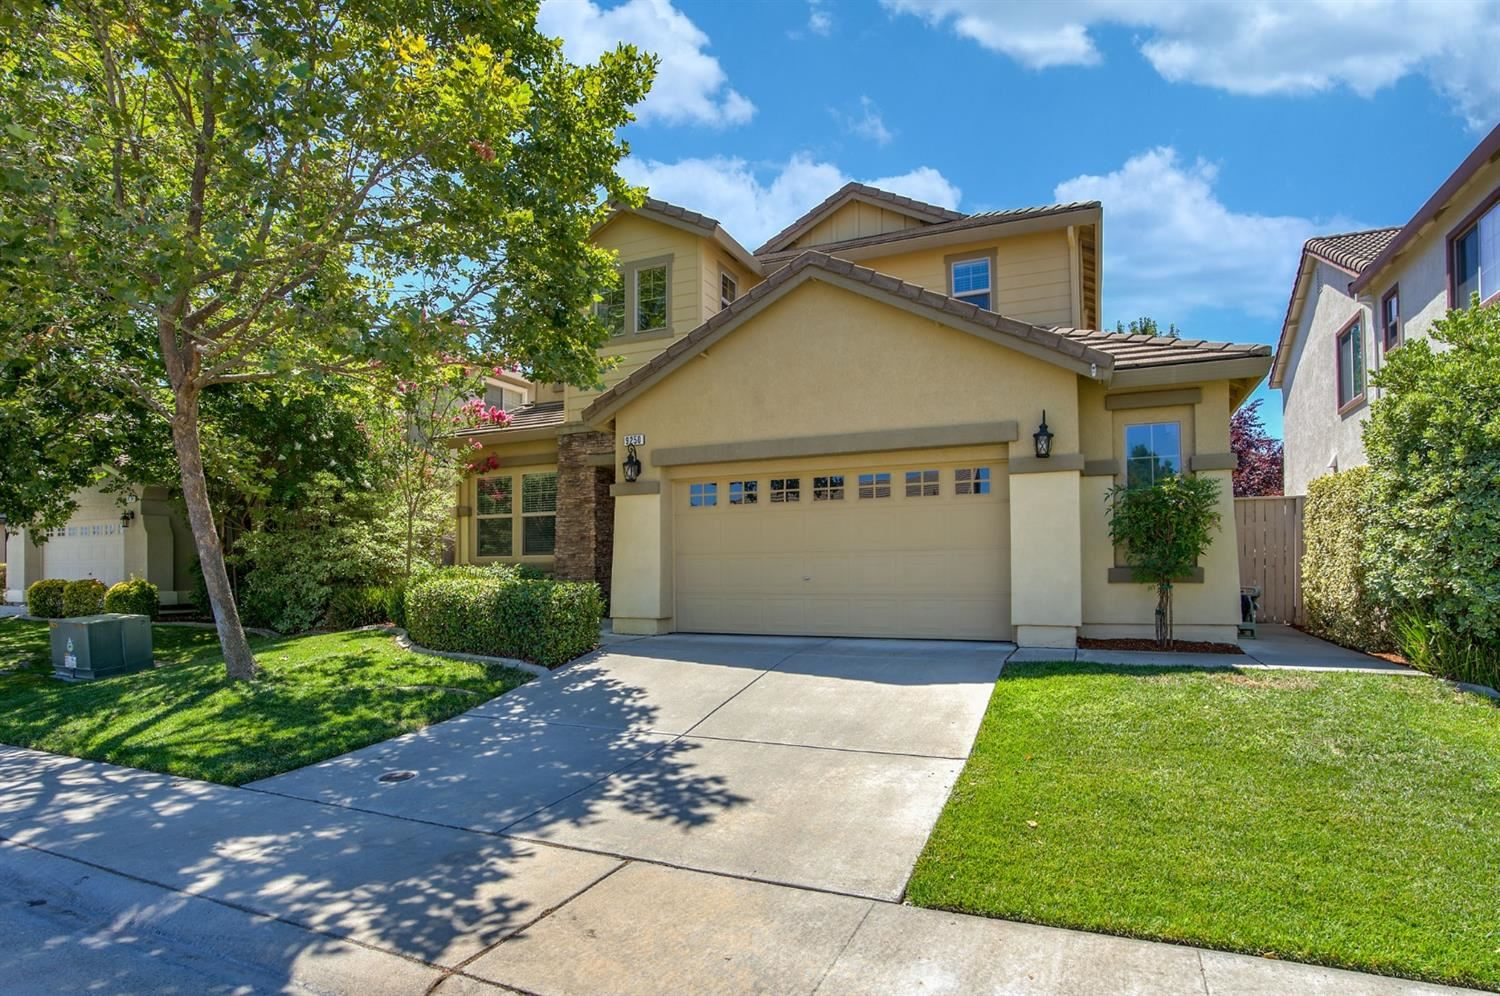 9250 Almondwillow Way, Elk Grove, CA 95624 - #: 20045309